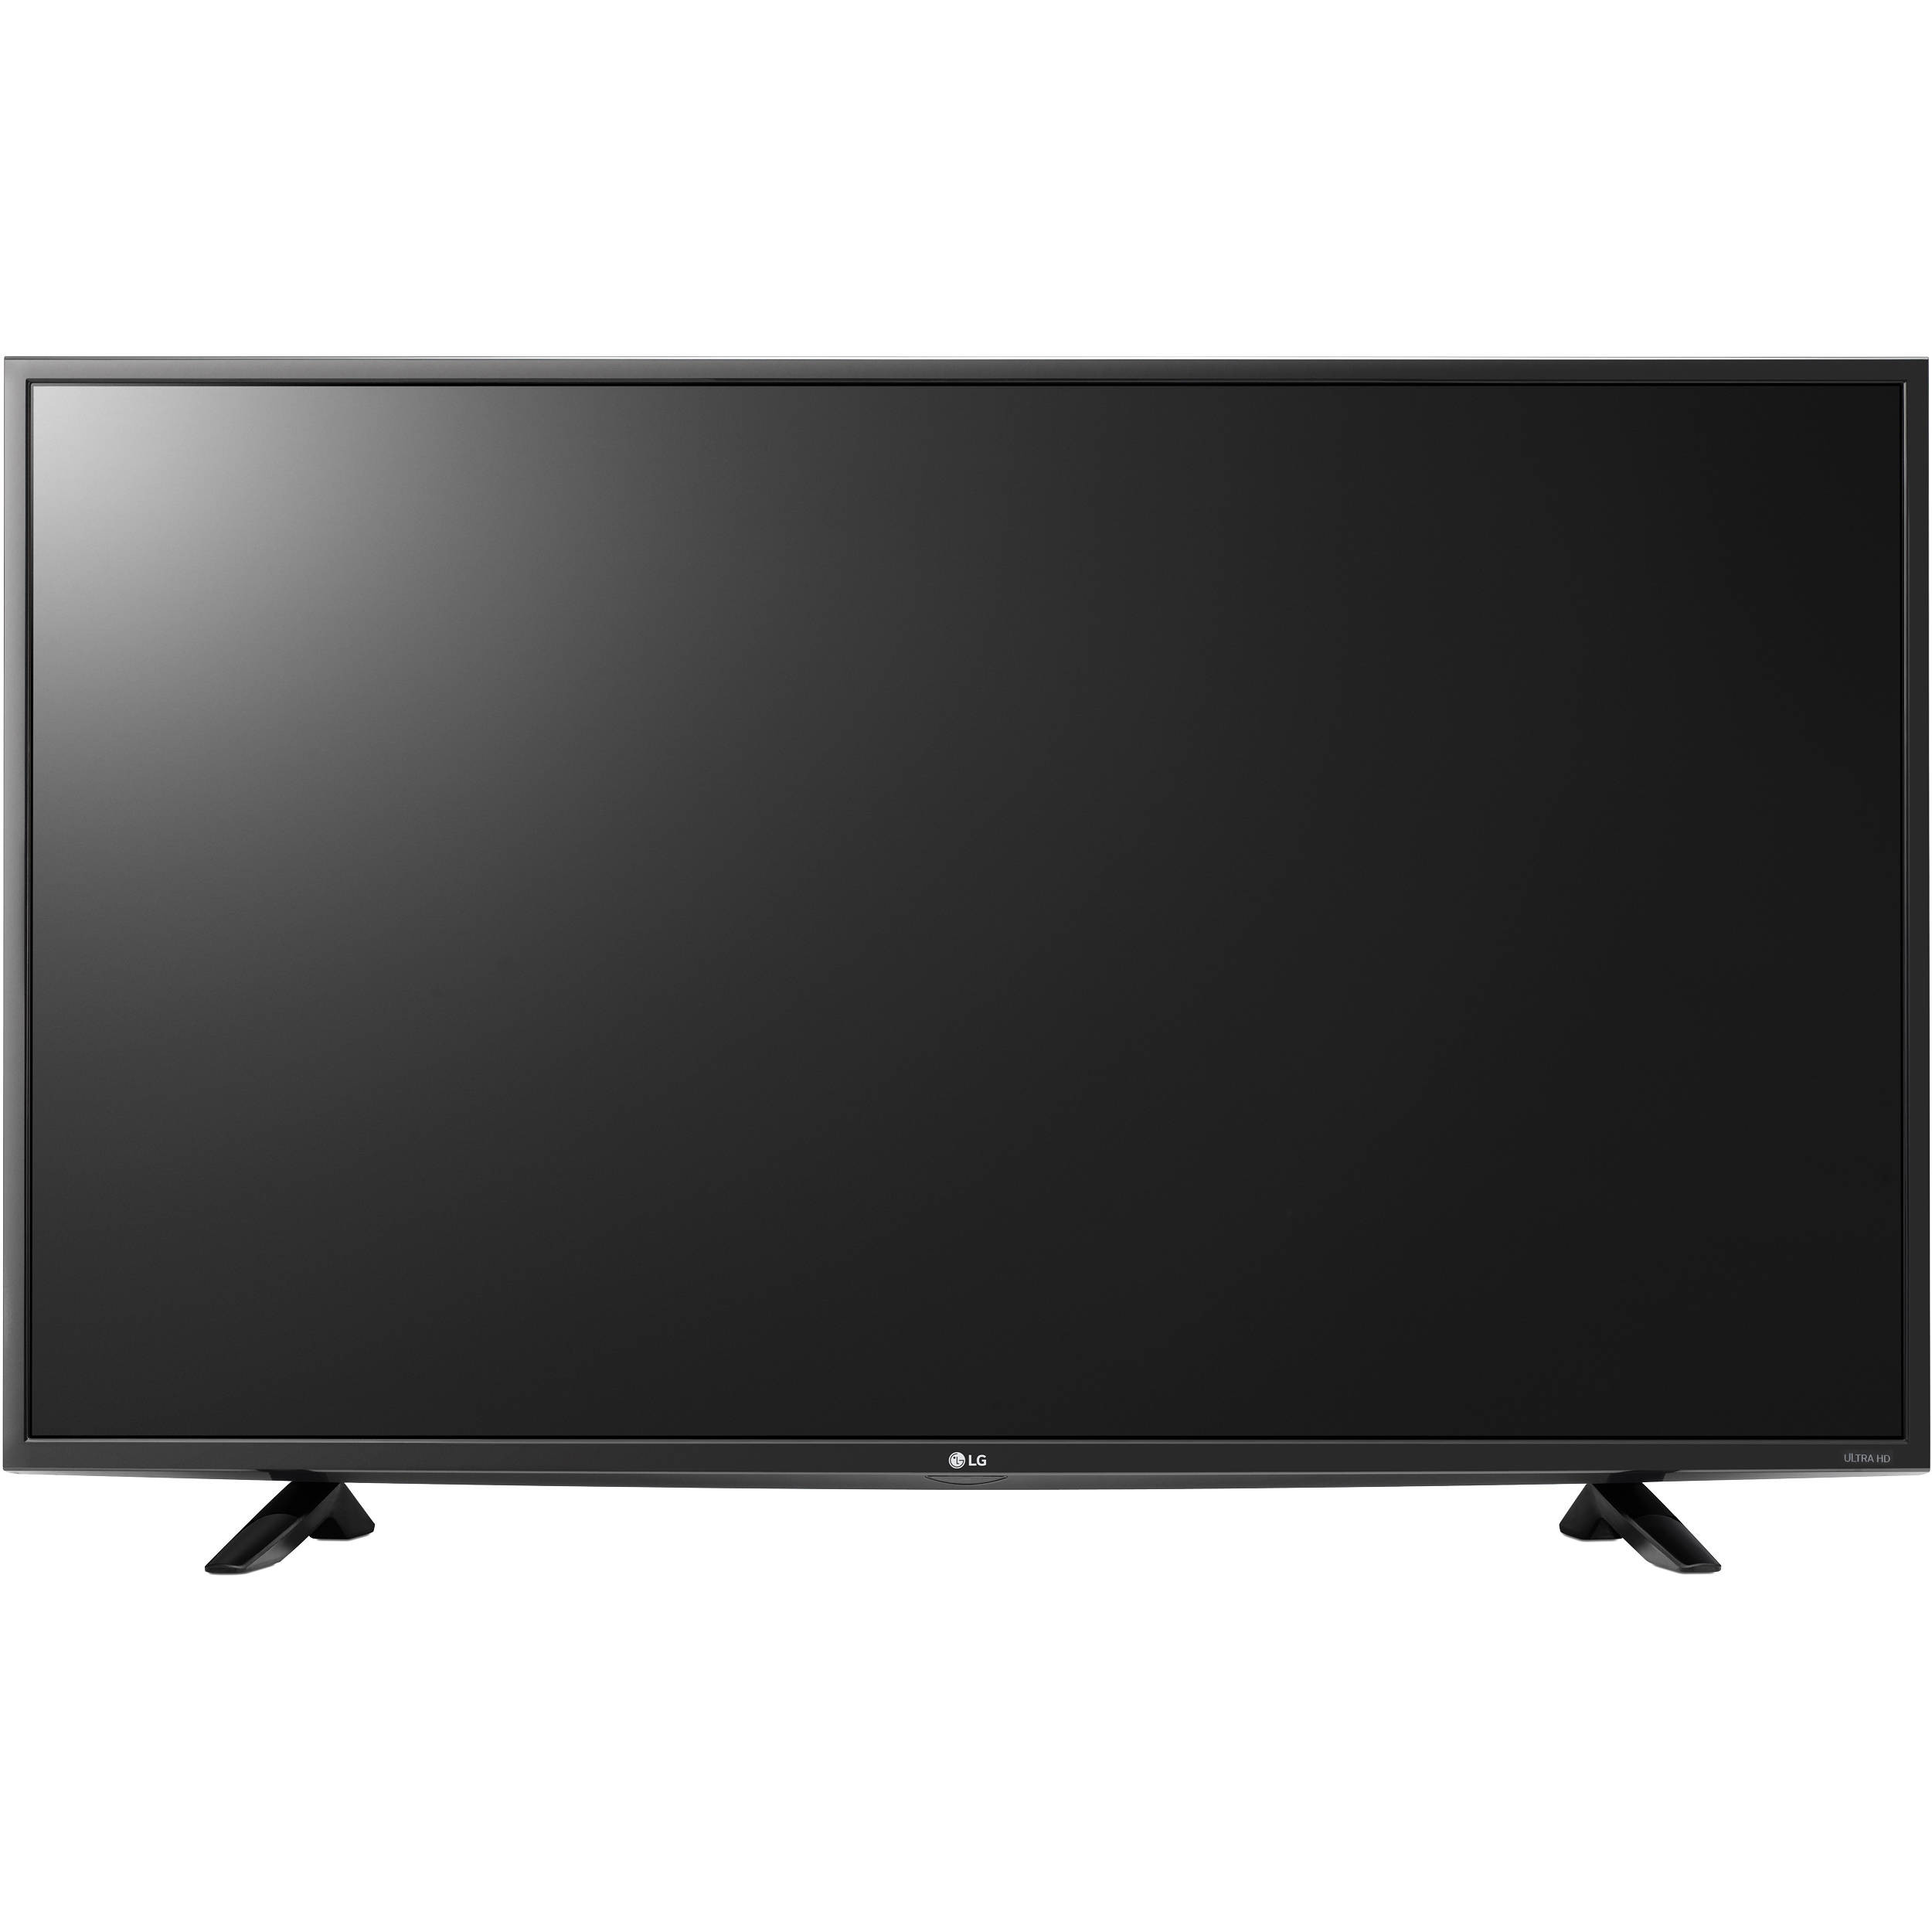 "Tv Lg 43 4k Único Lg Uf6400 Series 43"" Class 4k Smart Ips Tv Of 36  Único Tv Lg 43 4k"